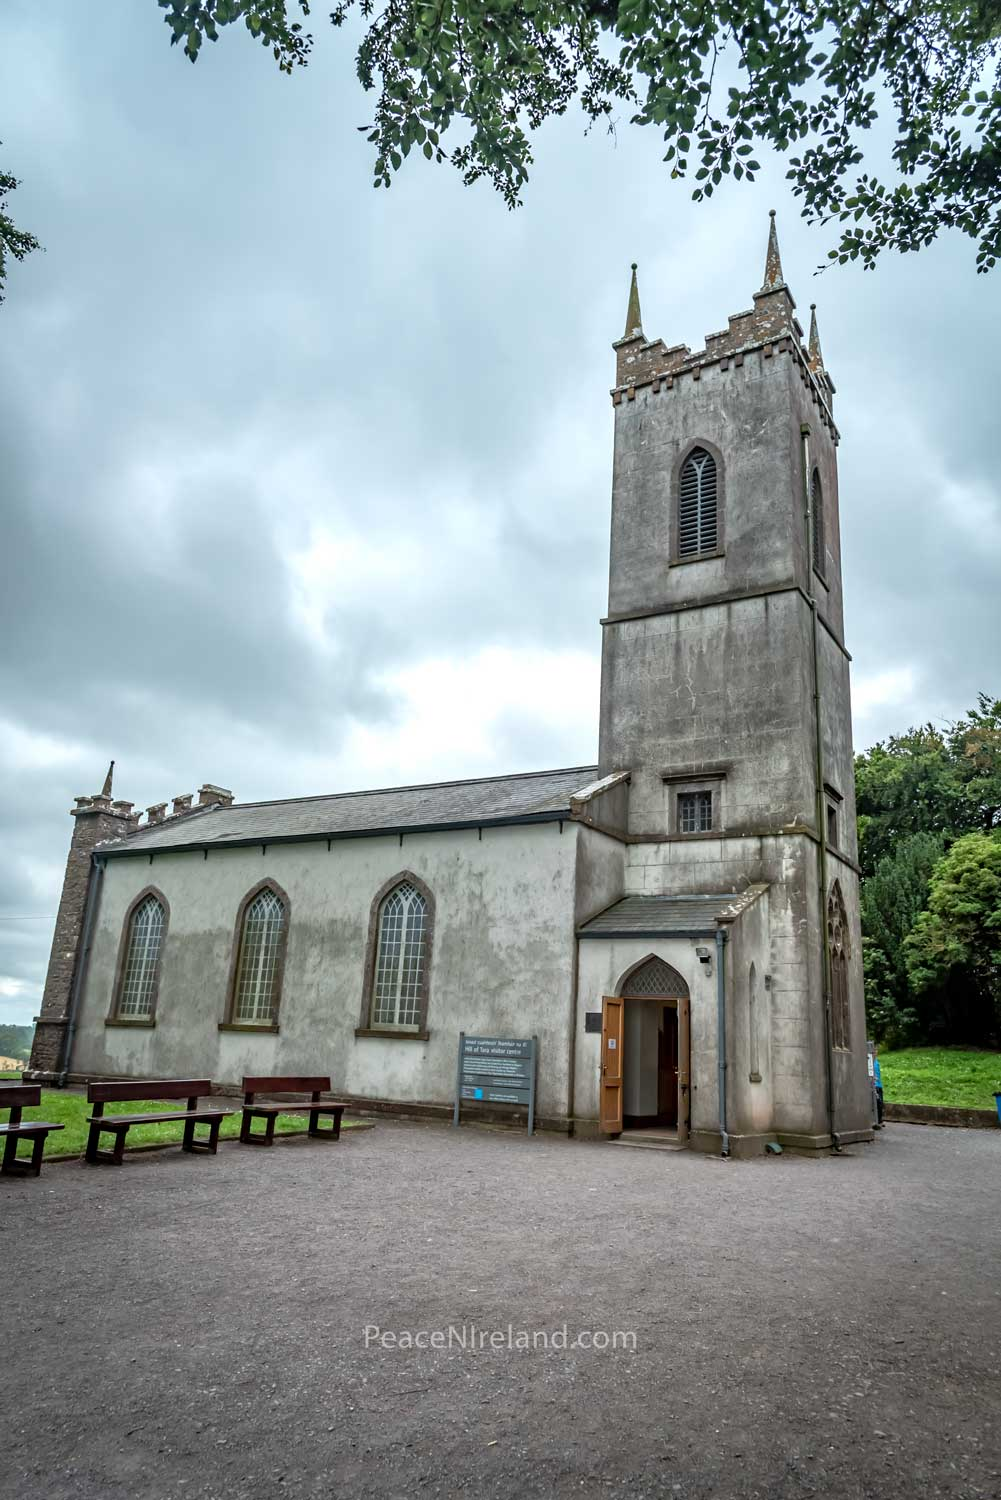 St Patrick's Church at Hill of Tara which has now been de-commissioned and opened as a visitor centre.